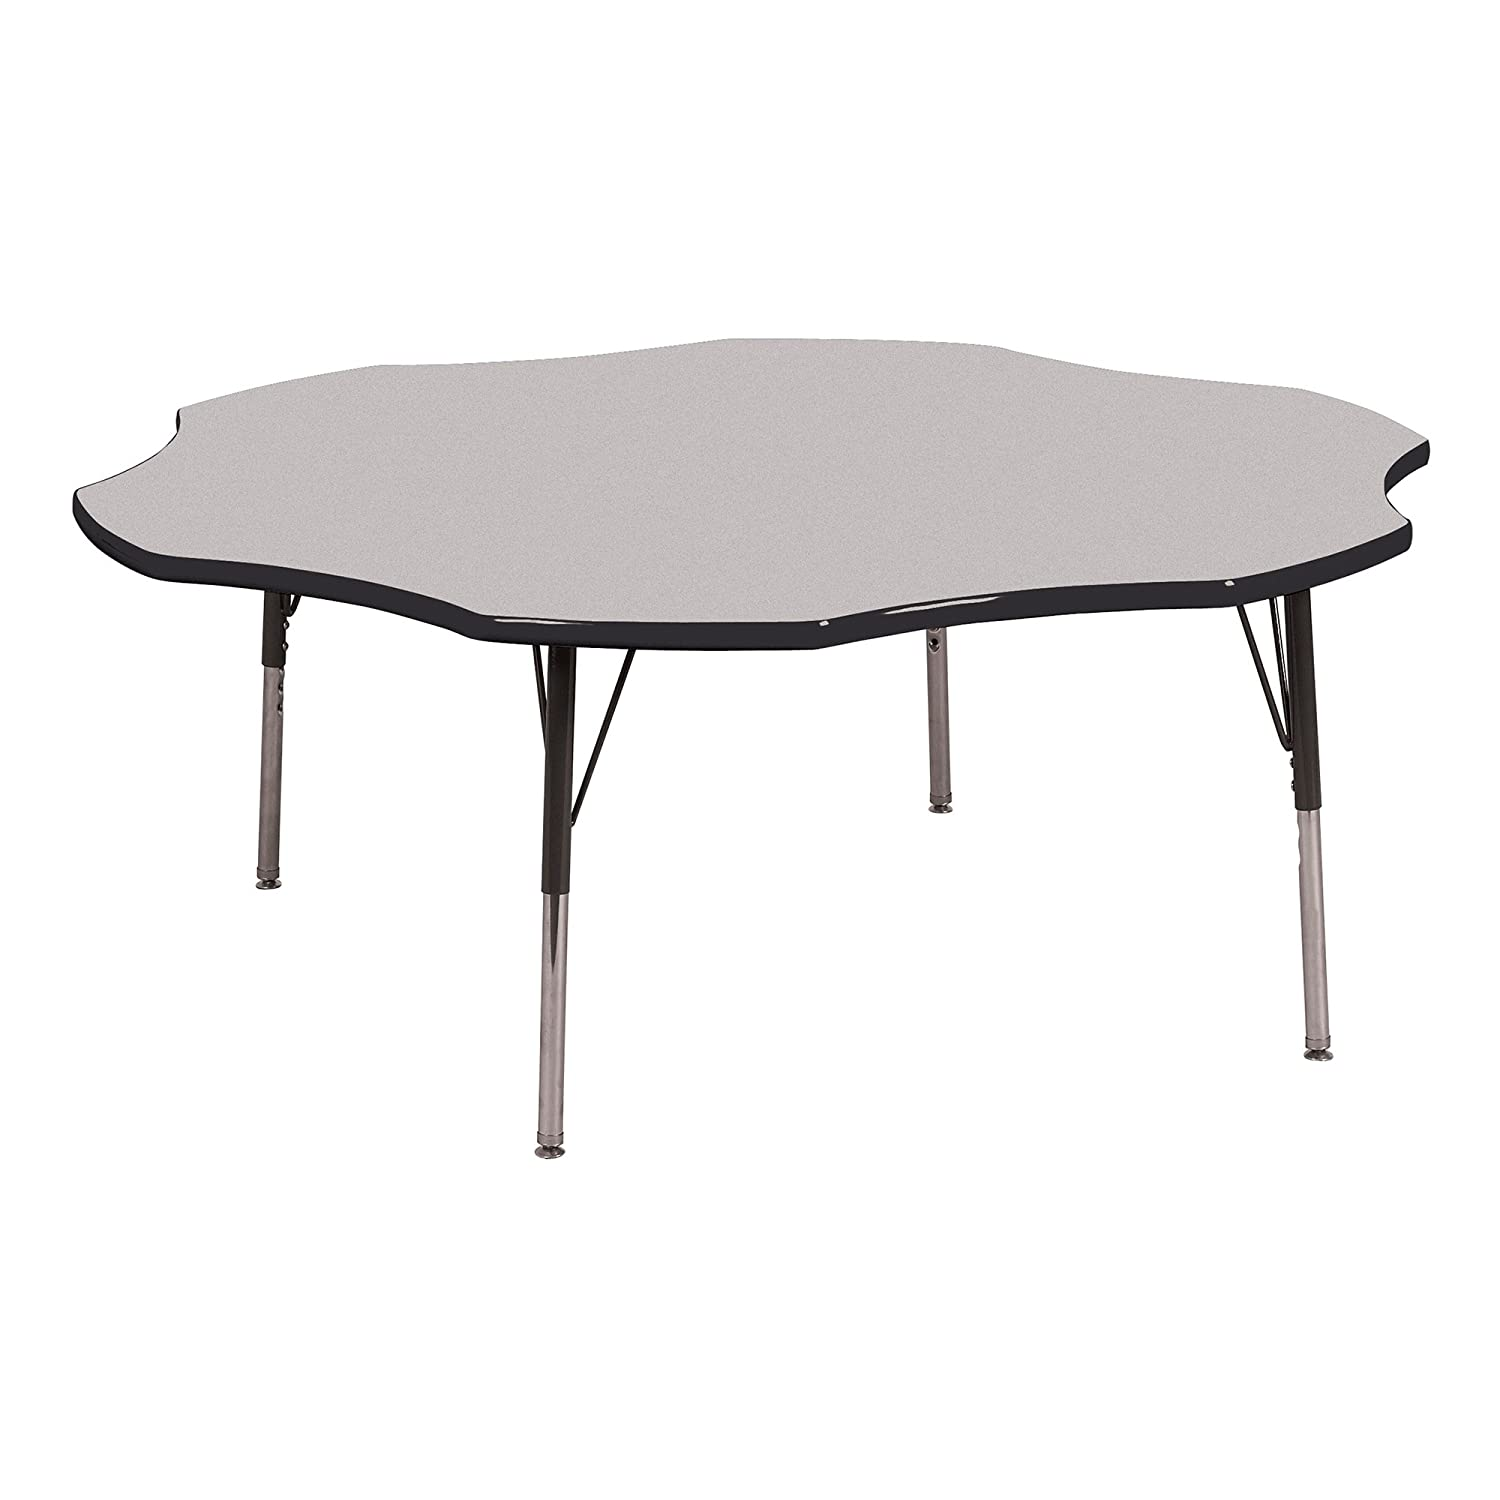 """Norwood Commercial Furniture Adjustable-Height Flower Activity Table, 60"""" Diameter, Gray/Black, NOR-RCEFLWC-GBK"""